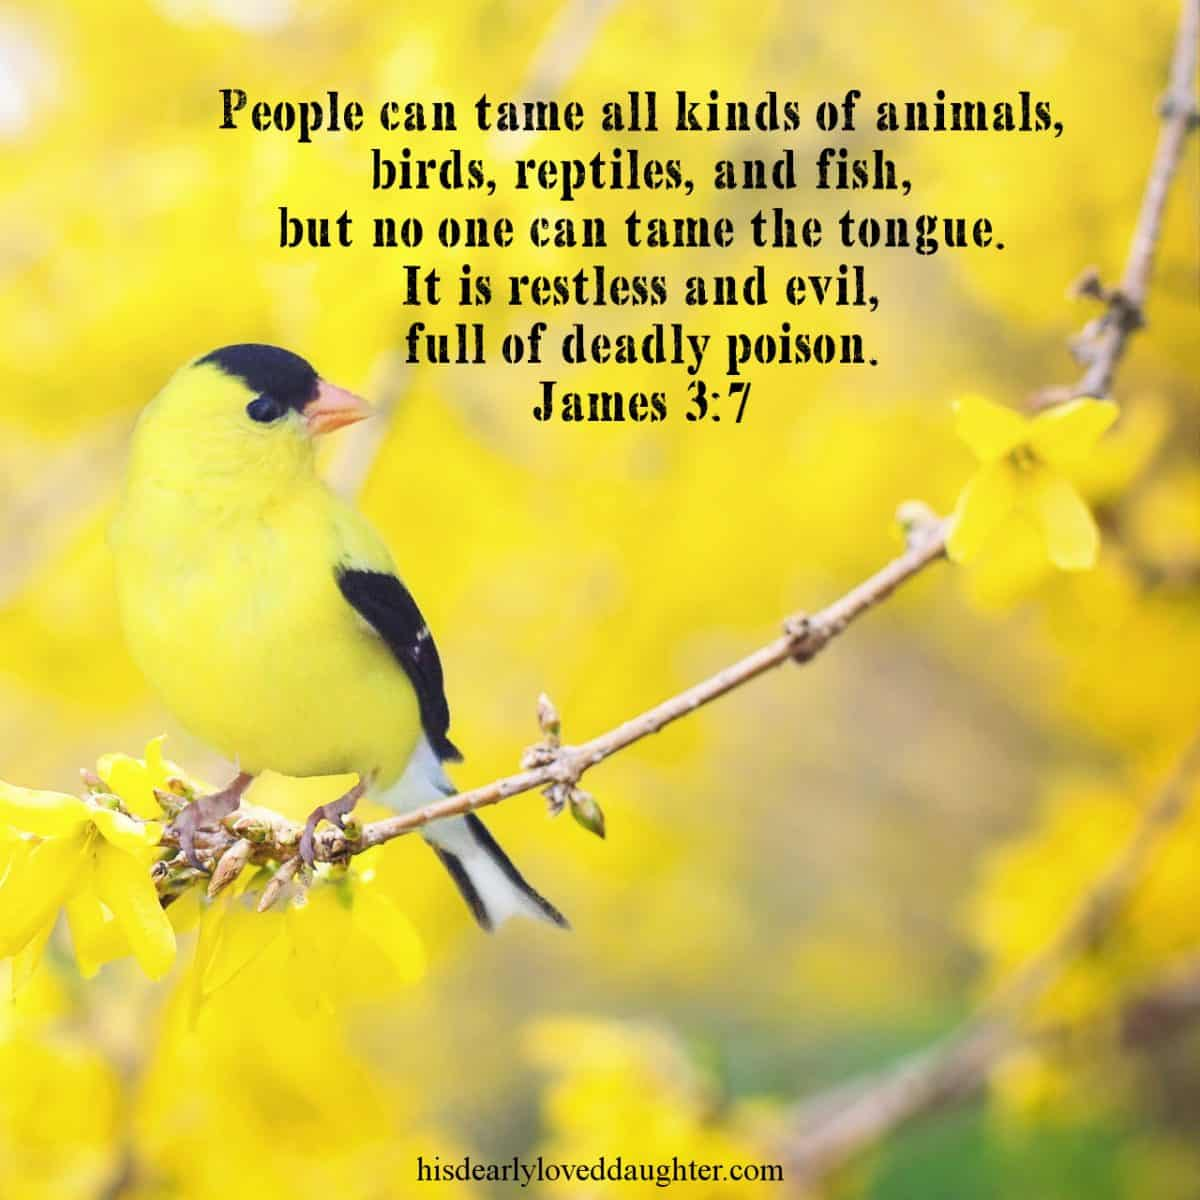 People can tame all kinds of animals, birds, reptiles, and fish, but no one can tame the tongue. It is restless and evil, full of deadly poison. James 3:7